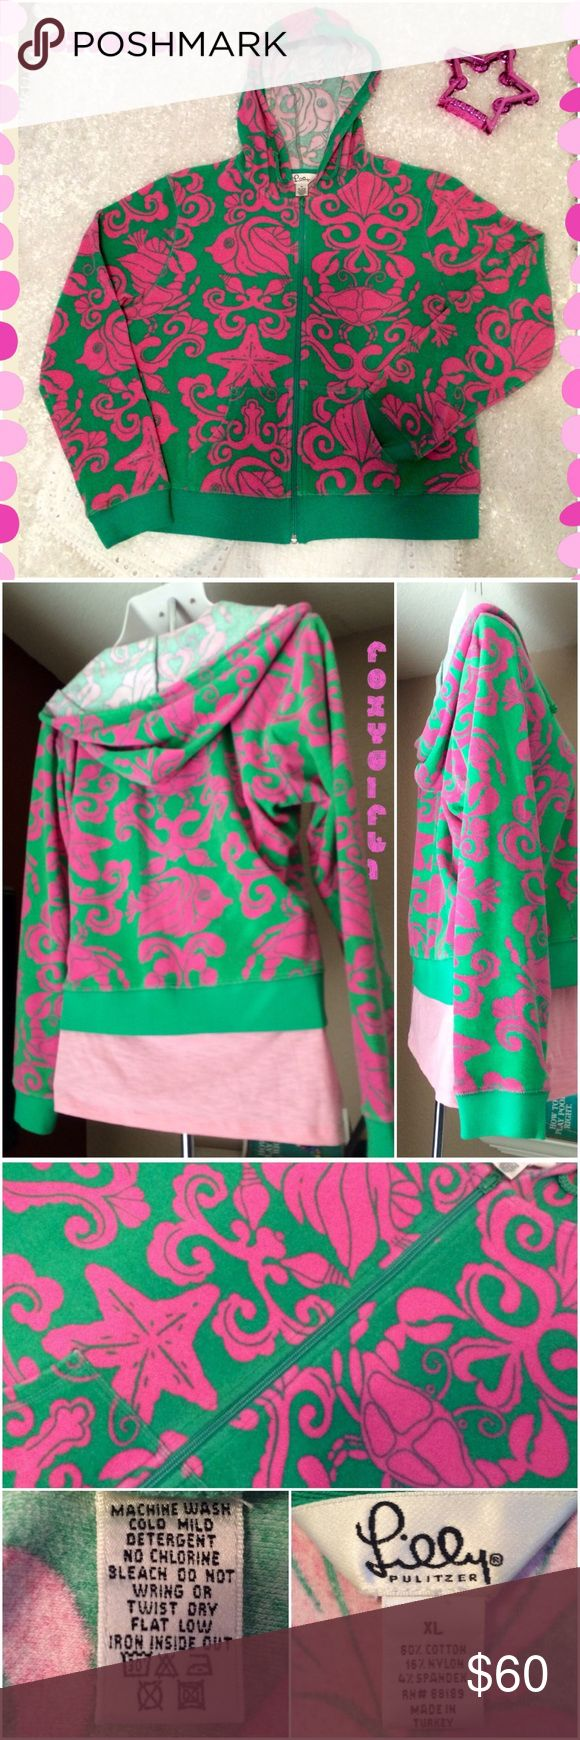 "Lilly Pulitzer Zip Up Hoodie ~ Adorable Lilly Pulitzer Zip Up Hoodie  Adorable Green with Pink Nautical Print   In Great Condition ~ No Marks, Fading or Stains! The Jacket zippers completely down the front, the Hood has a Draw String, & there are 2 front pockets. The Jacket is Light Weight & could also be used as a beach cover up. Measurements: Arm pit to Arm pit 22"" & Shoulder seam to hem 22"" ❌NO TRADE❌ Lilly Pulitzer Tops Sweatshirts & Hoodies"